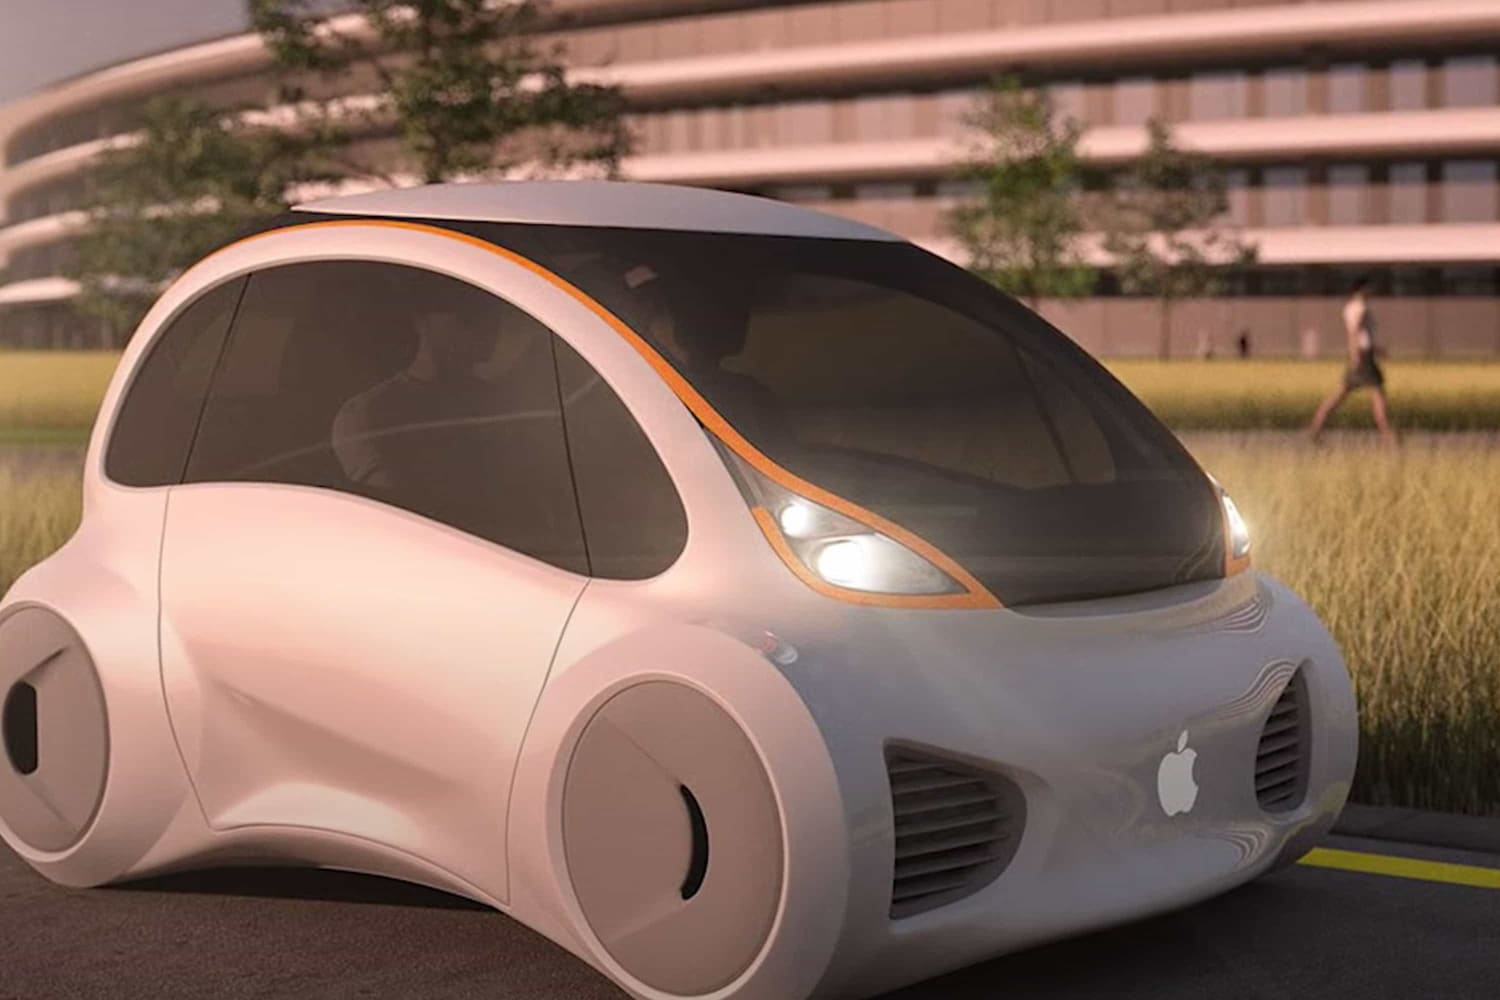 adjustable-tinted-windows-sets-the-apple-car-apart-from-competitors-20201124-1